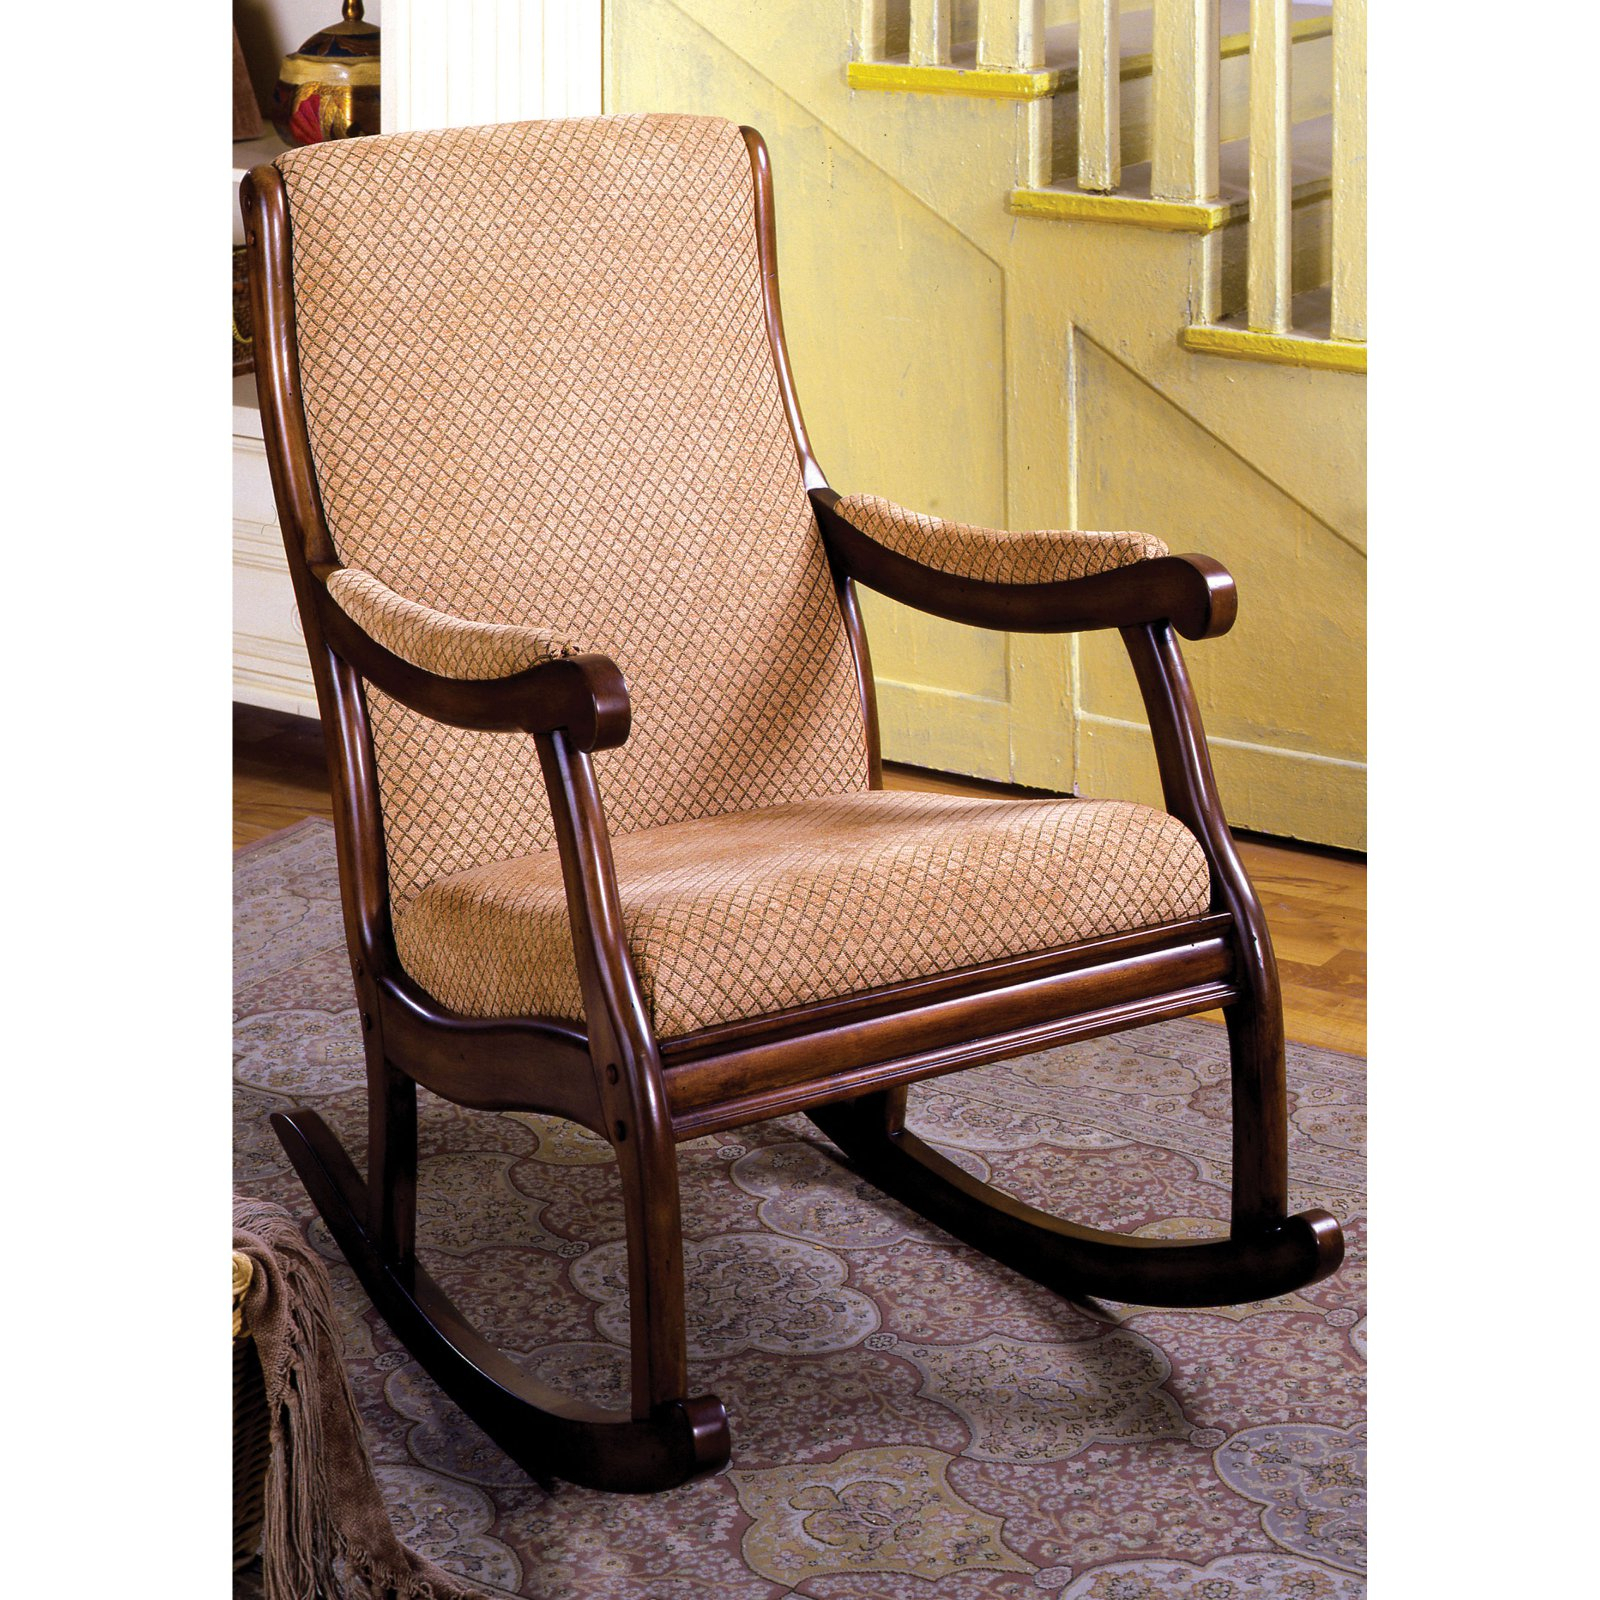 Furniture Of America Bernardette Upholstered Rocking Chair Throughout Padded Rocking Chairs (#10 of 20)